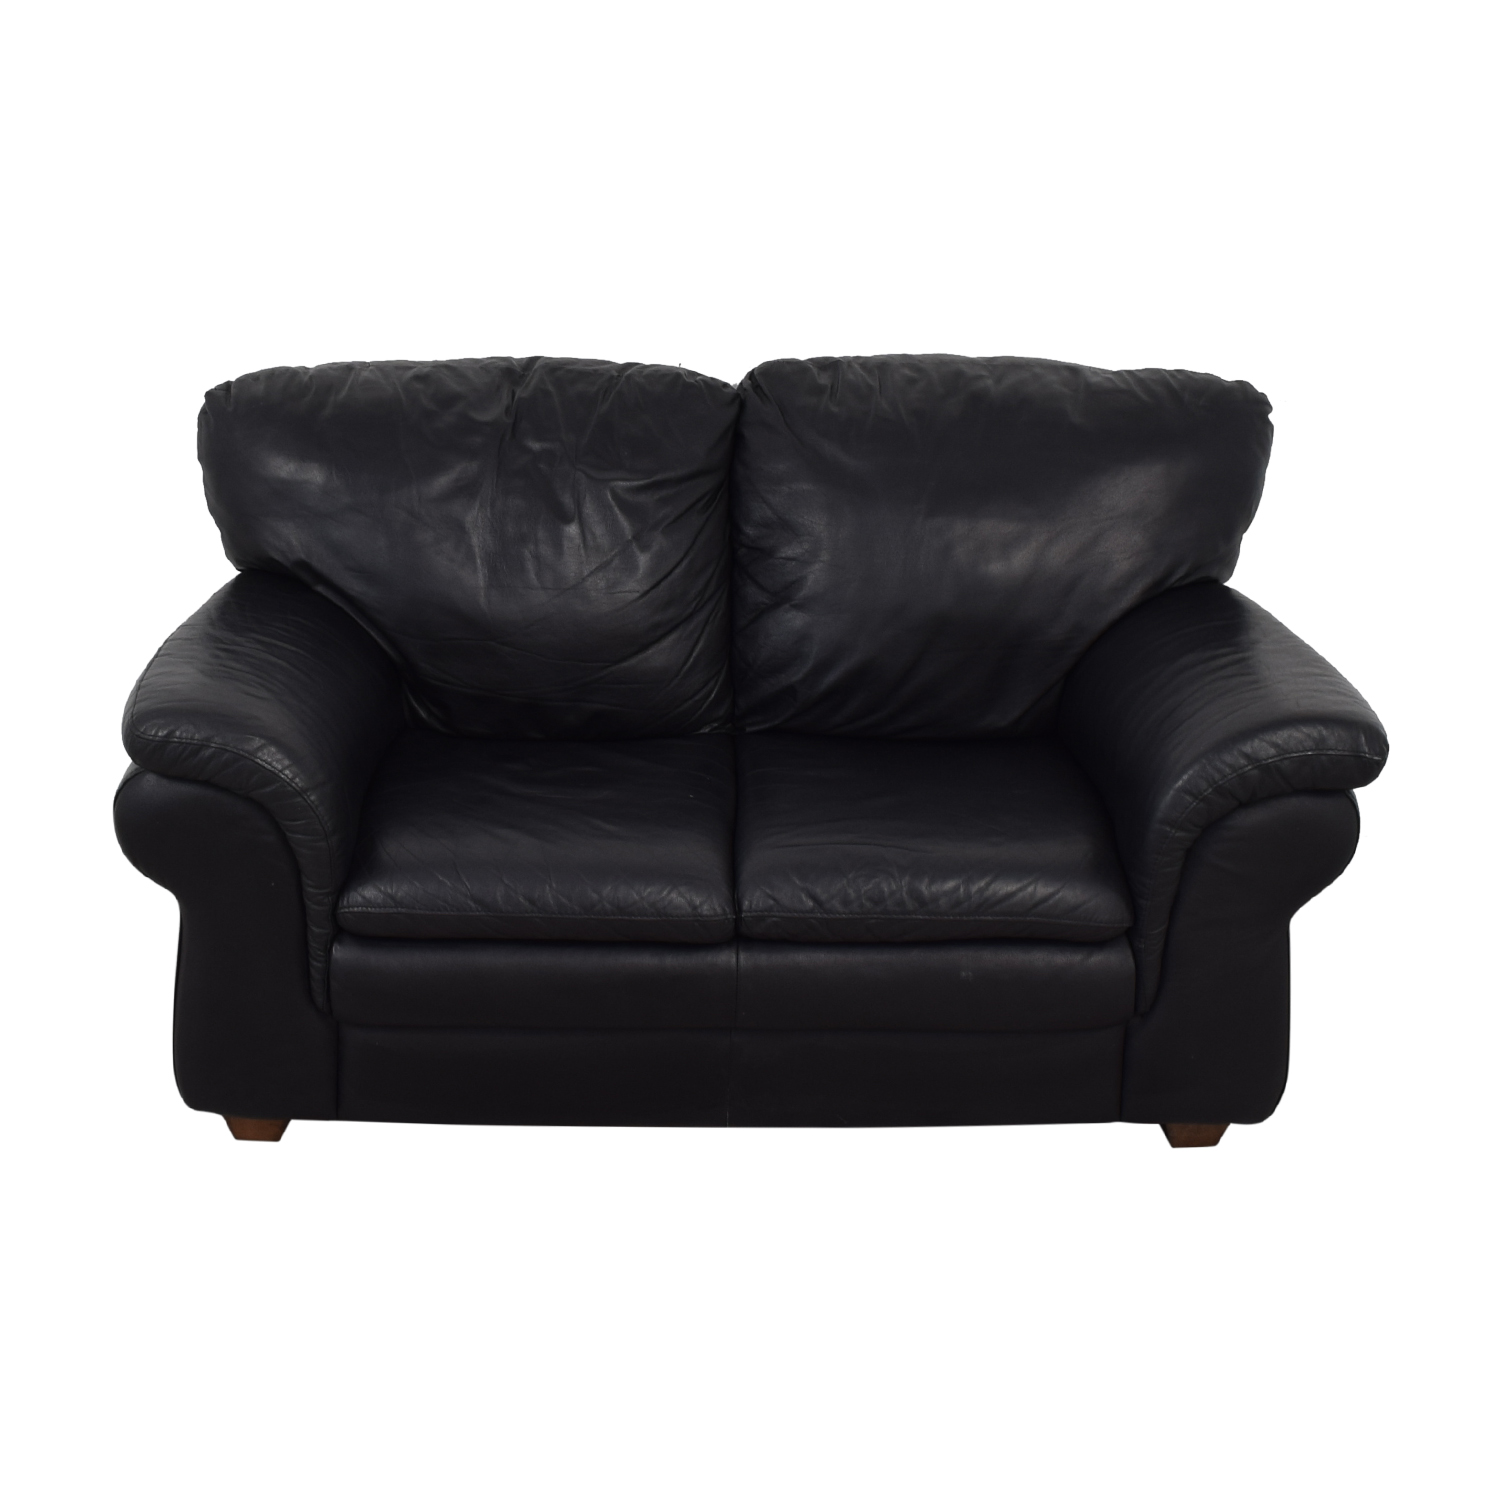 buy Bloomingdale's Black Two-Cushion Loveseat Bloomingdale's